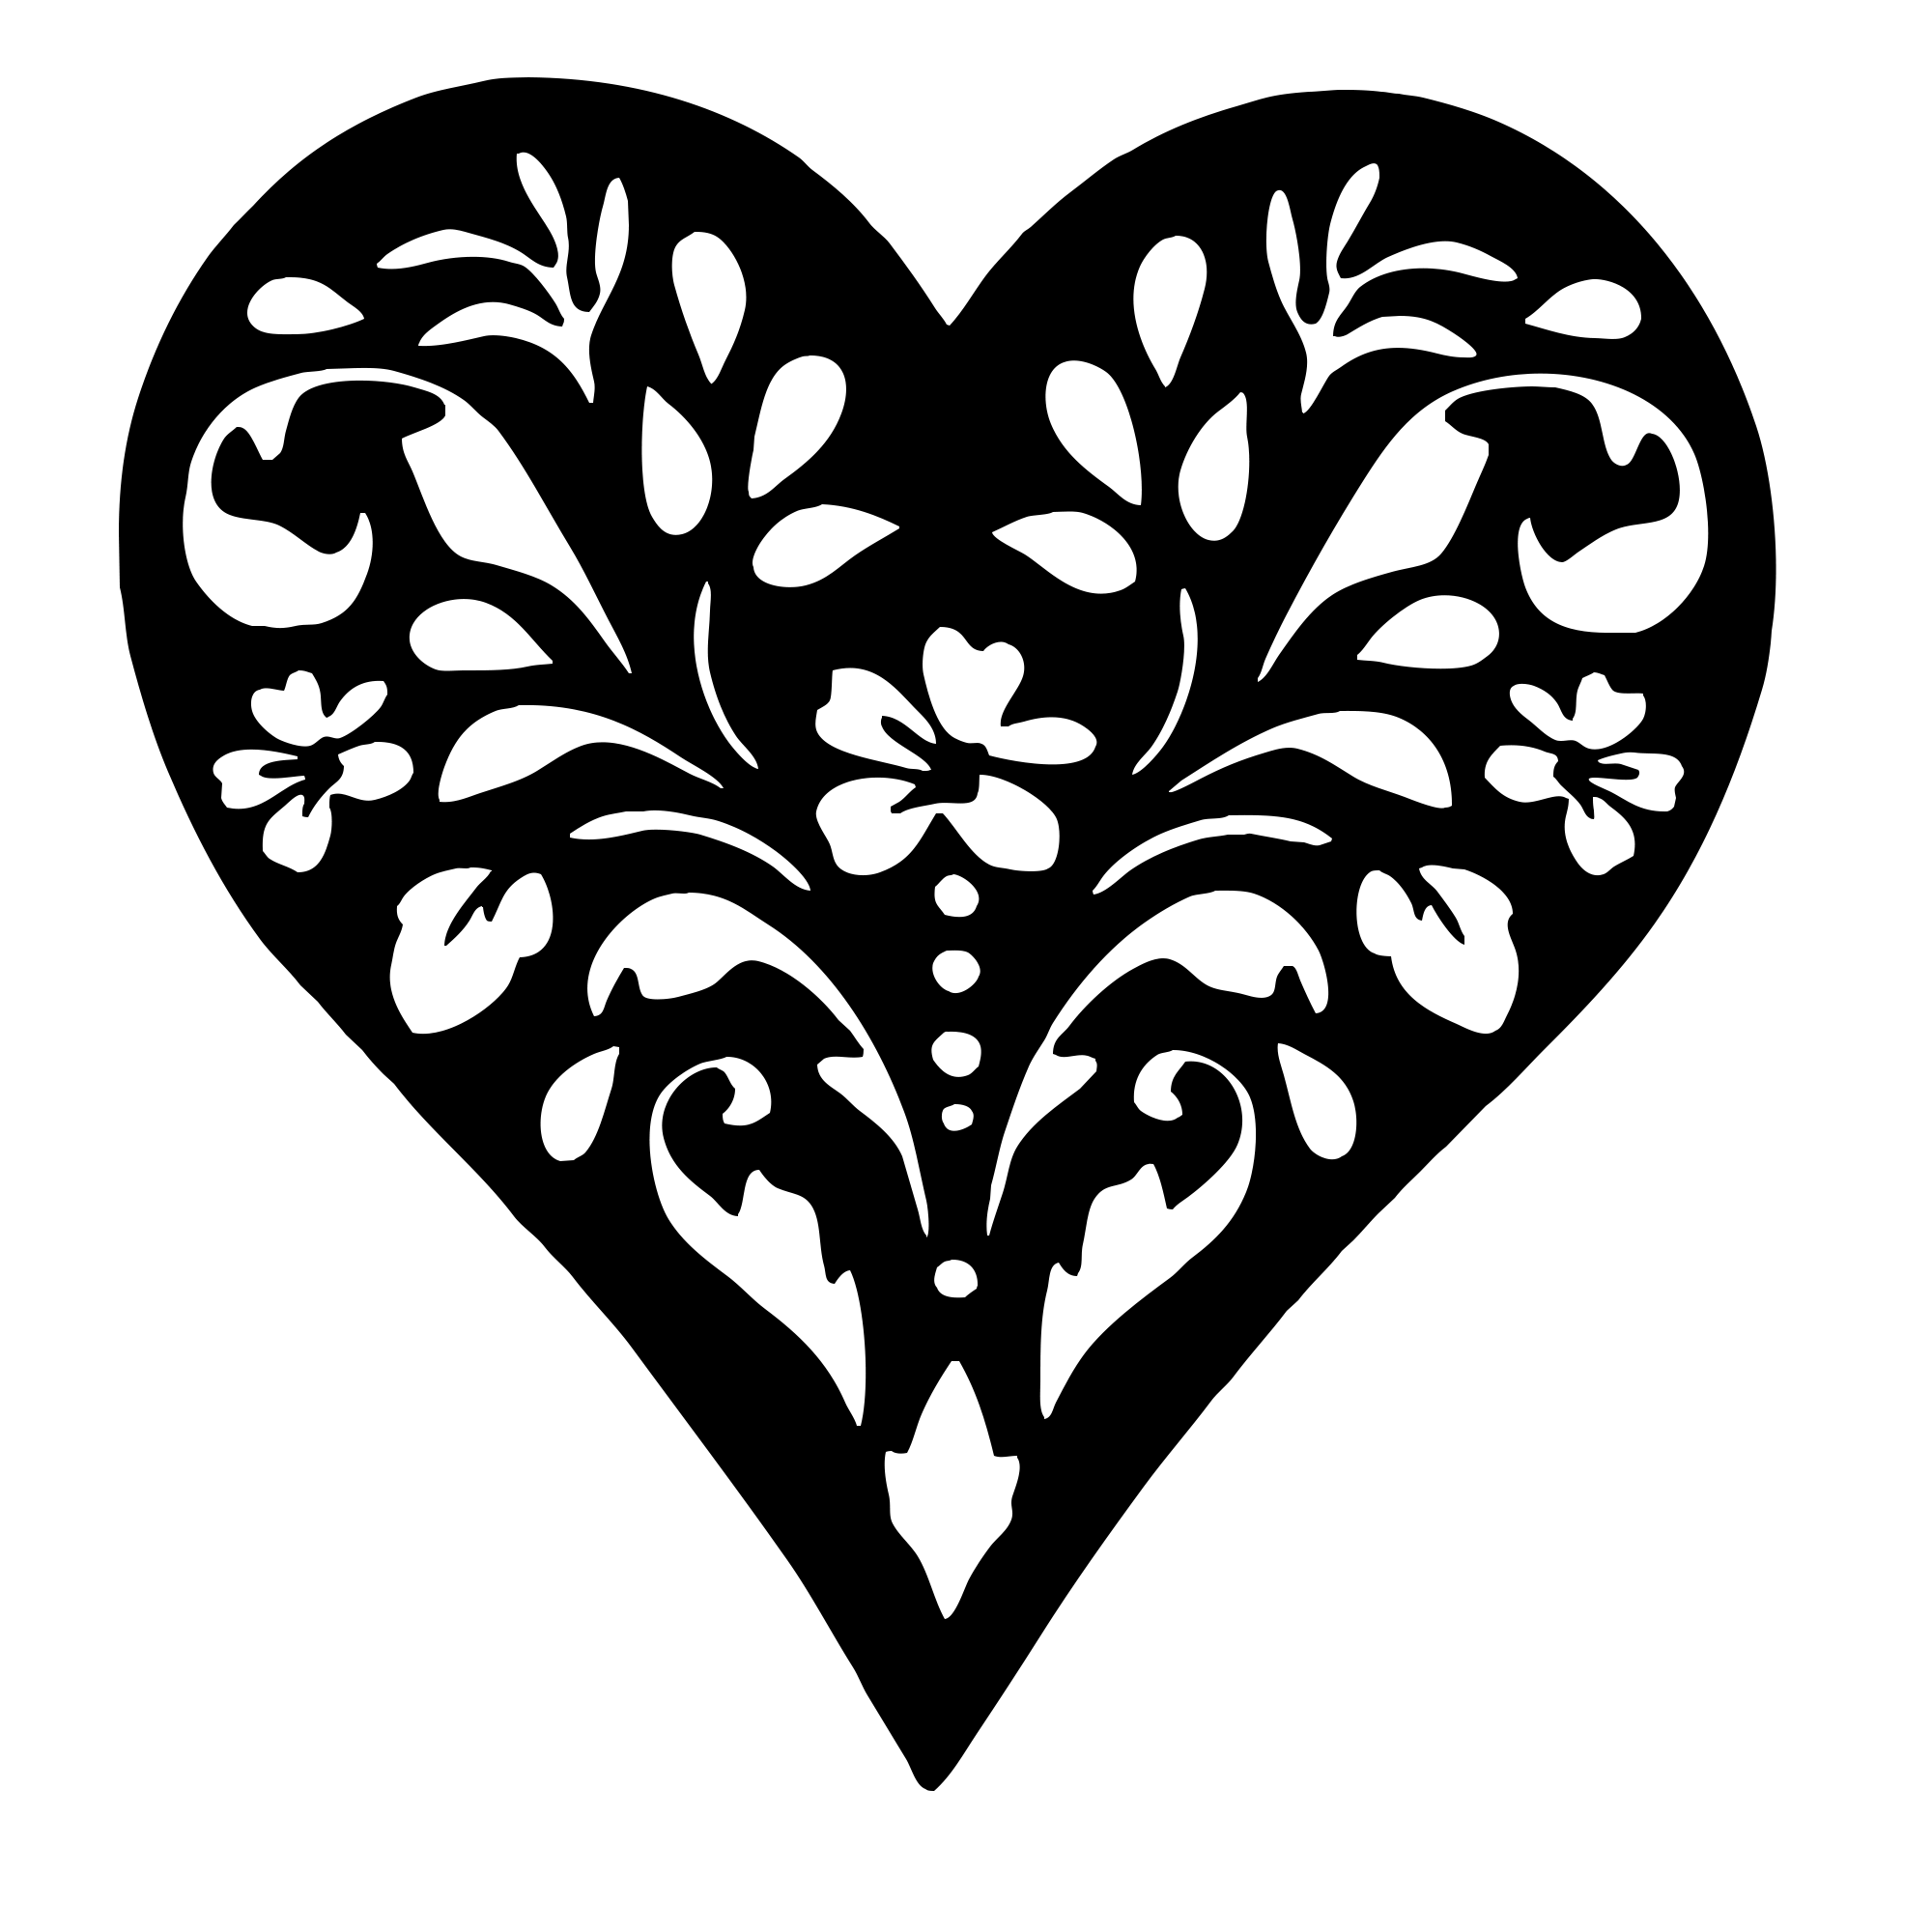 printable heart pictures free printable heart templates diy 100 ideas heart pictures printable